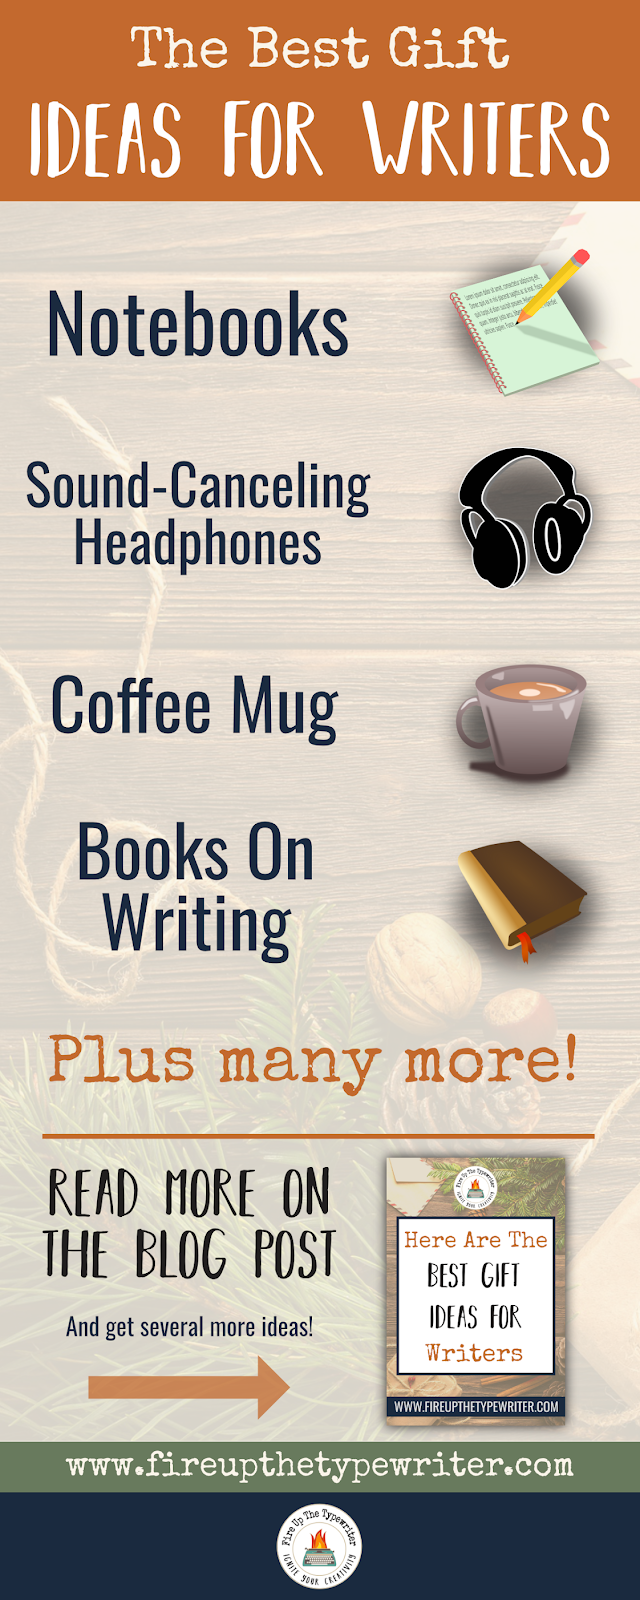 here are the best paid tools & gifts for writers | fire up the